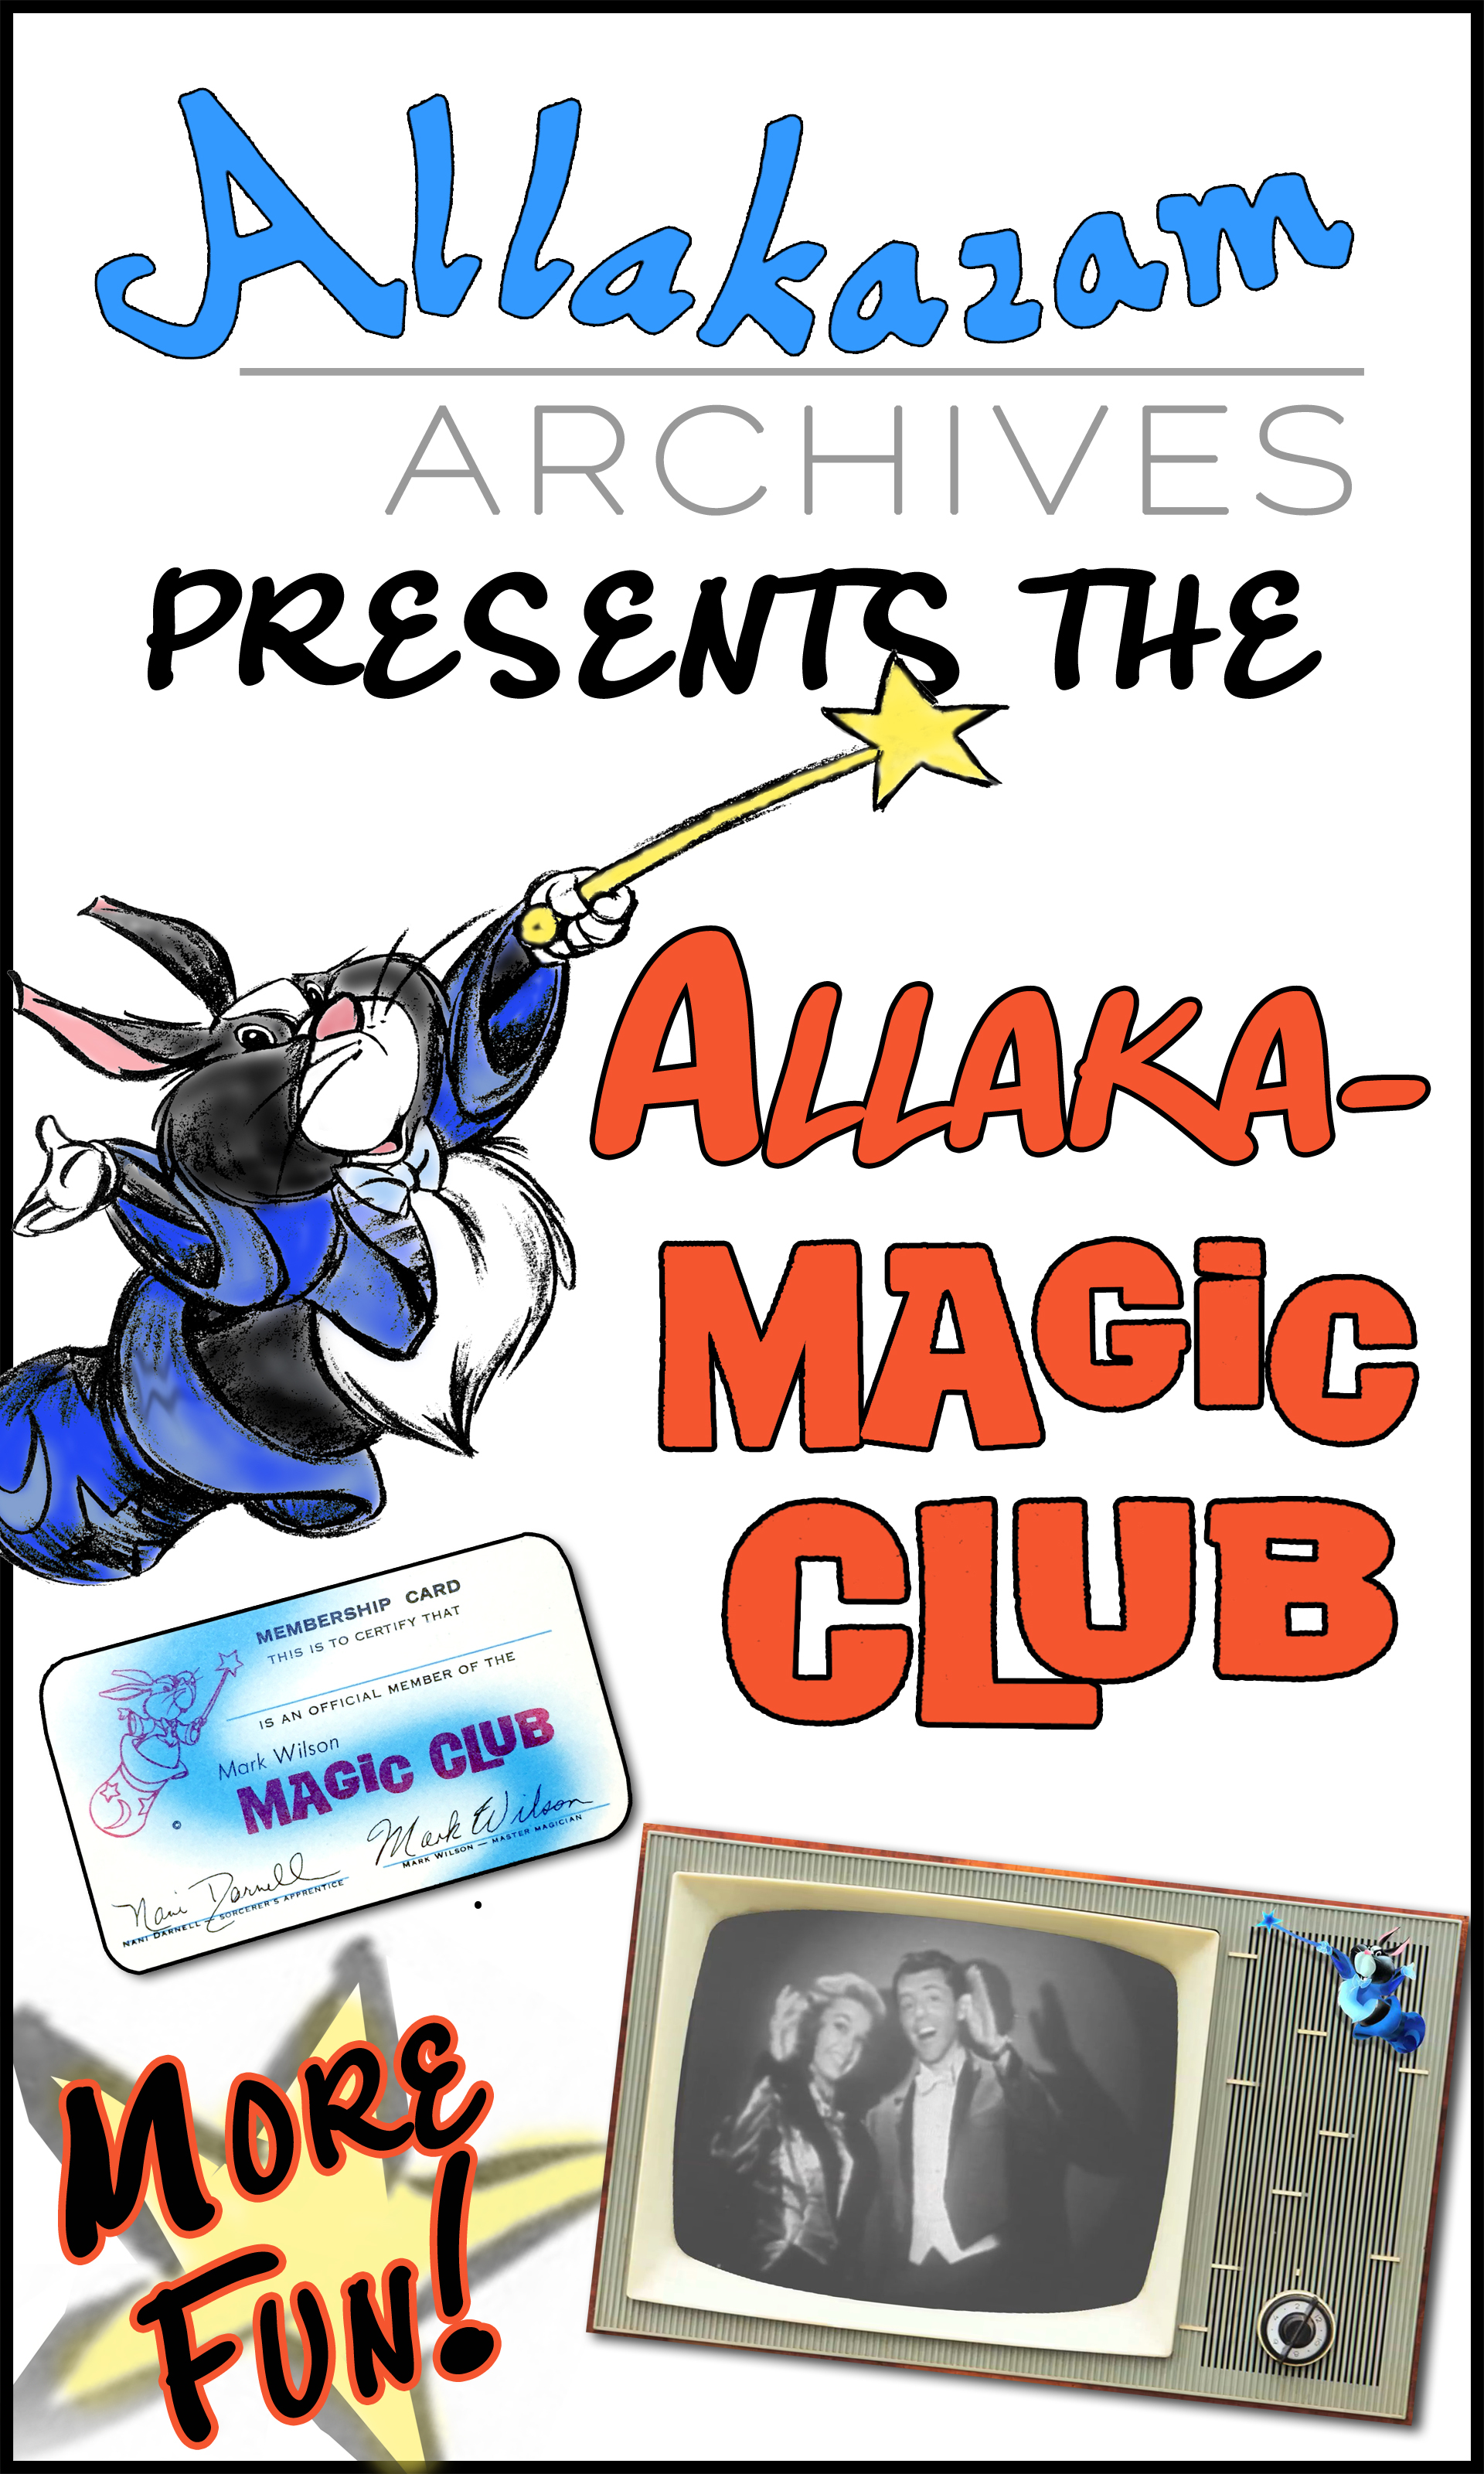 Join the Magic Club and support the efforts of the Archives